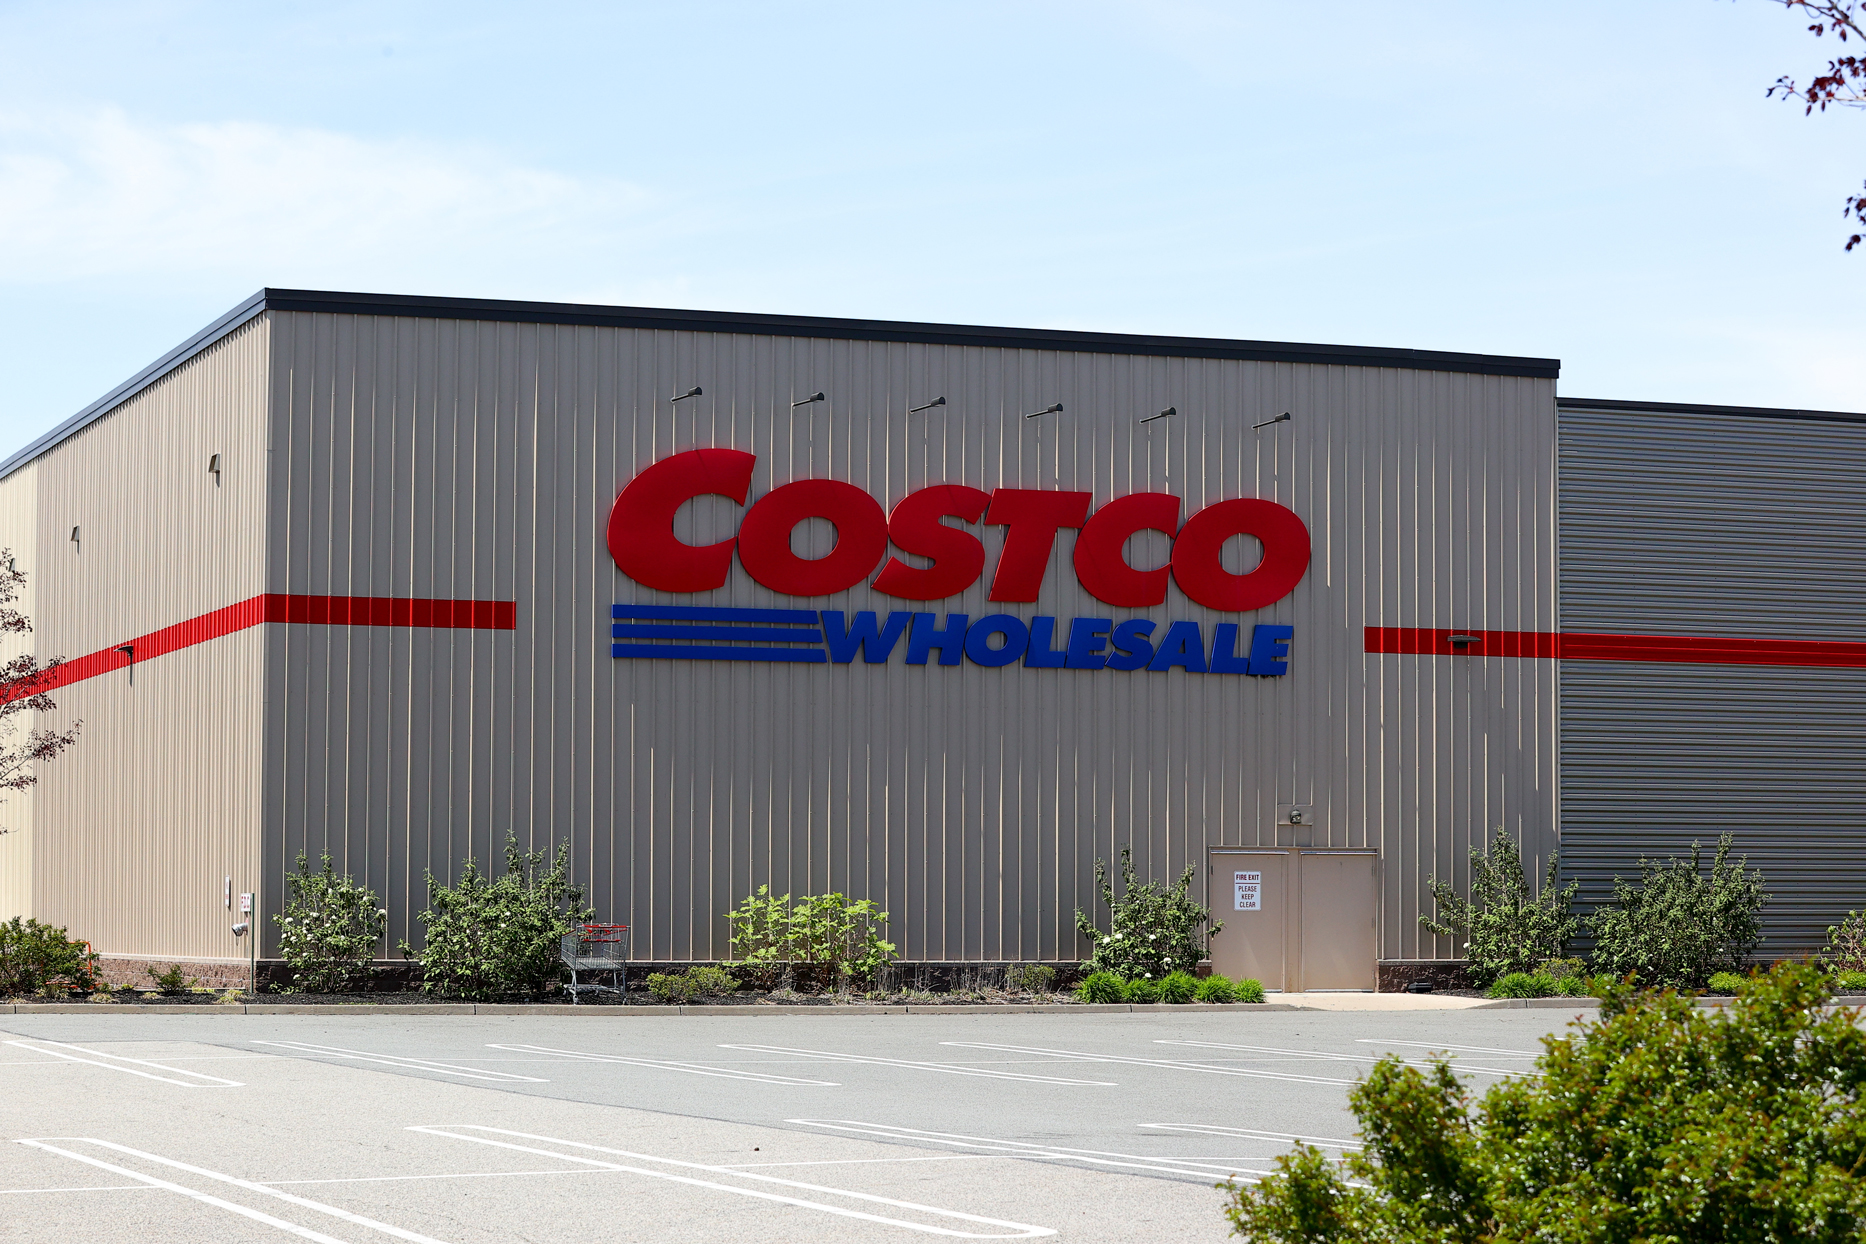 costco storefront with bushes and parking lot in front